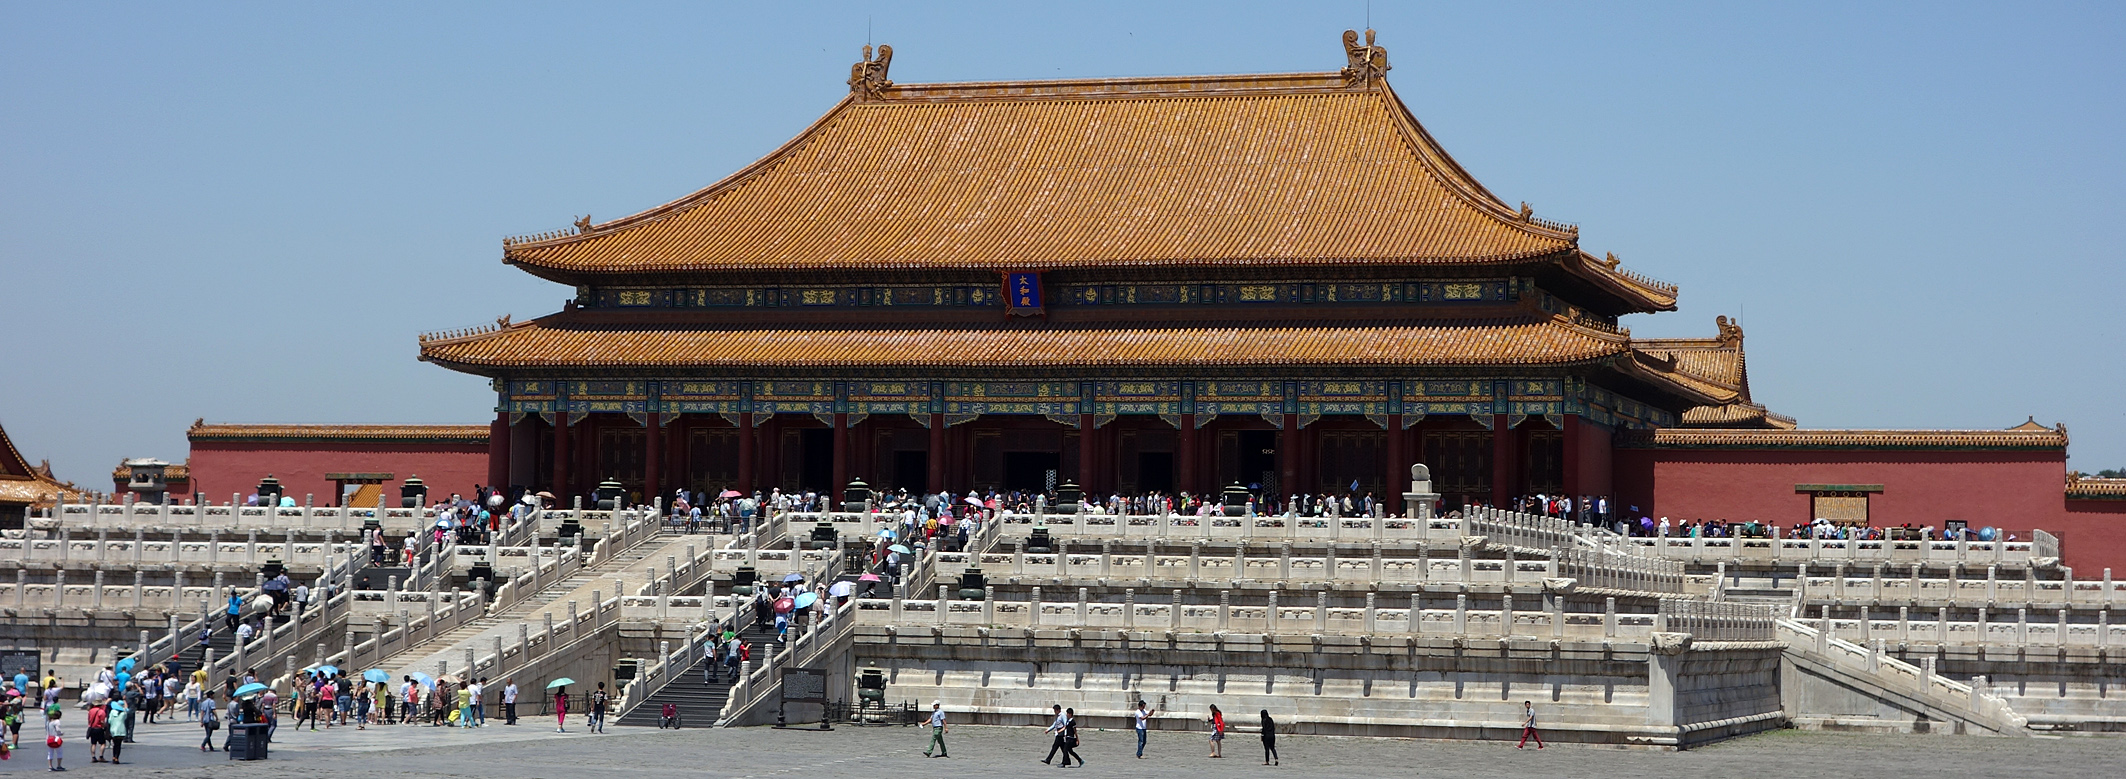 Beijing: Palace of Supreme Harmony